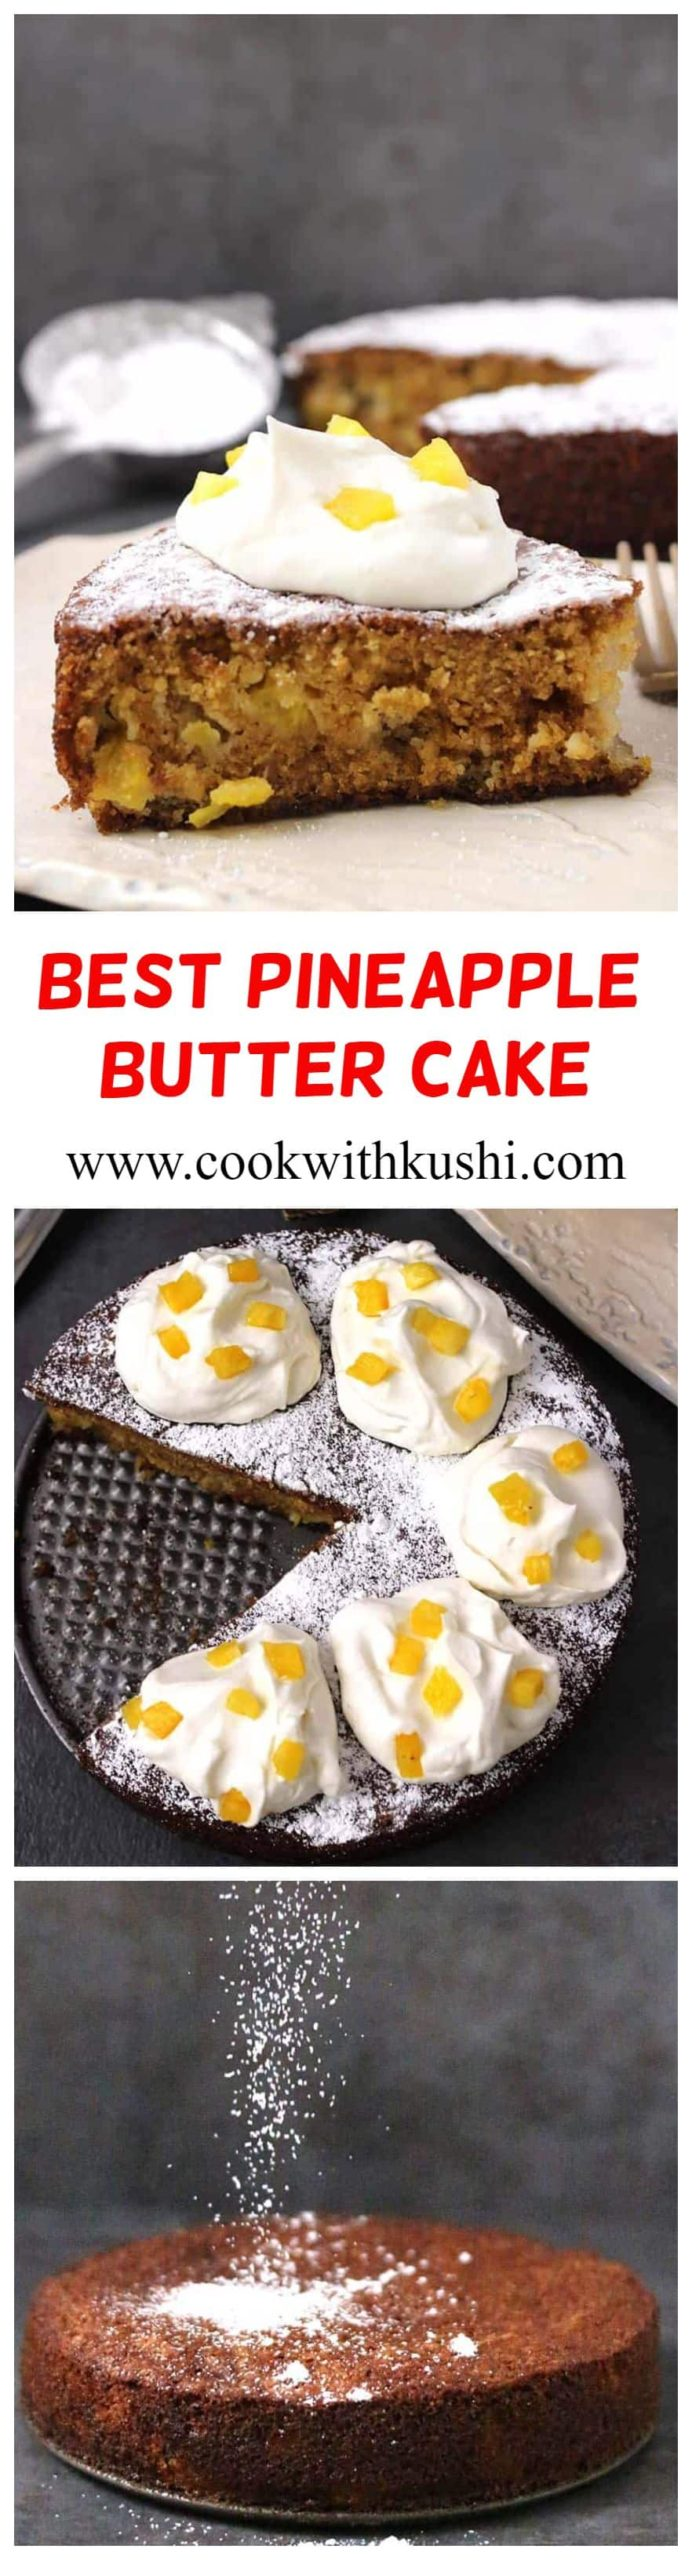 Pineapple Butter Cake is a classic and rich, super moist and buttery cake that is not only easy to make but so addictive that you will end up making it all the time! #easycake #pineapplecake #holidaybaking